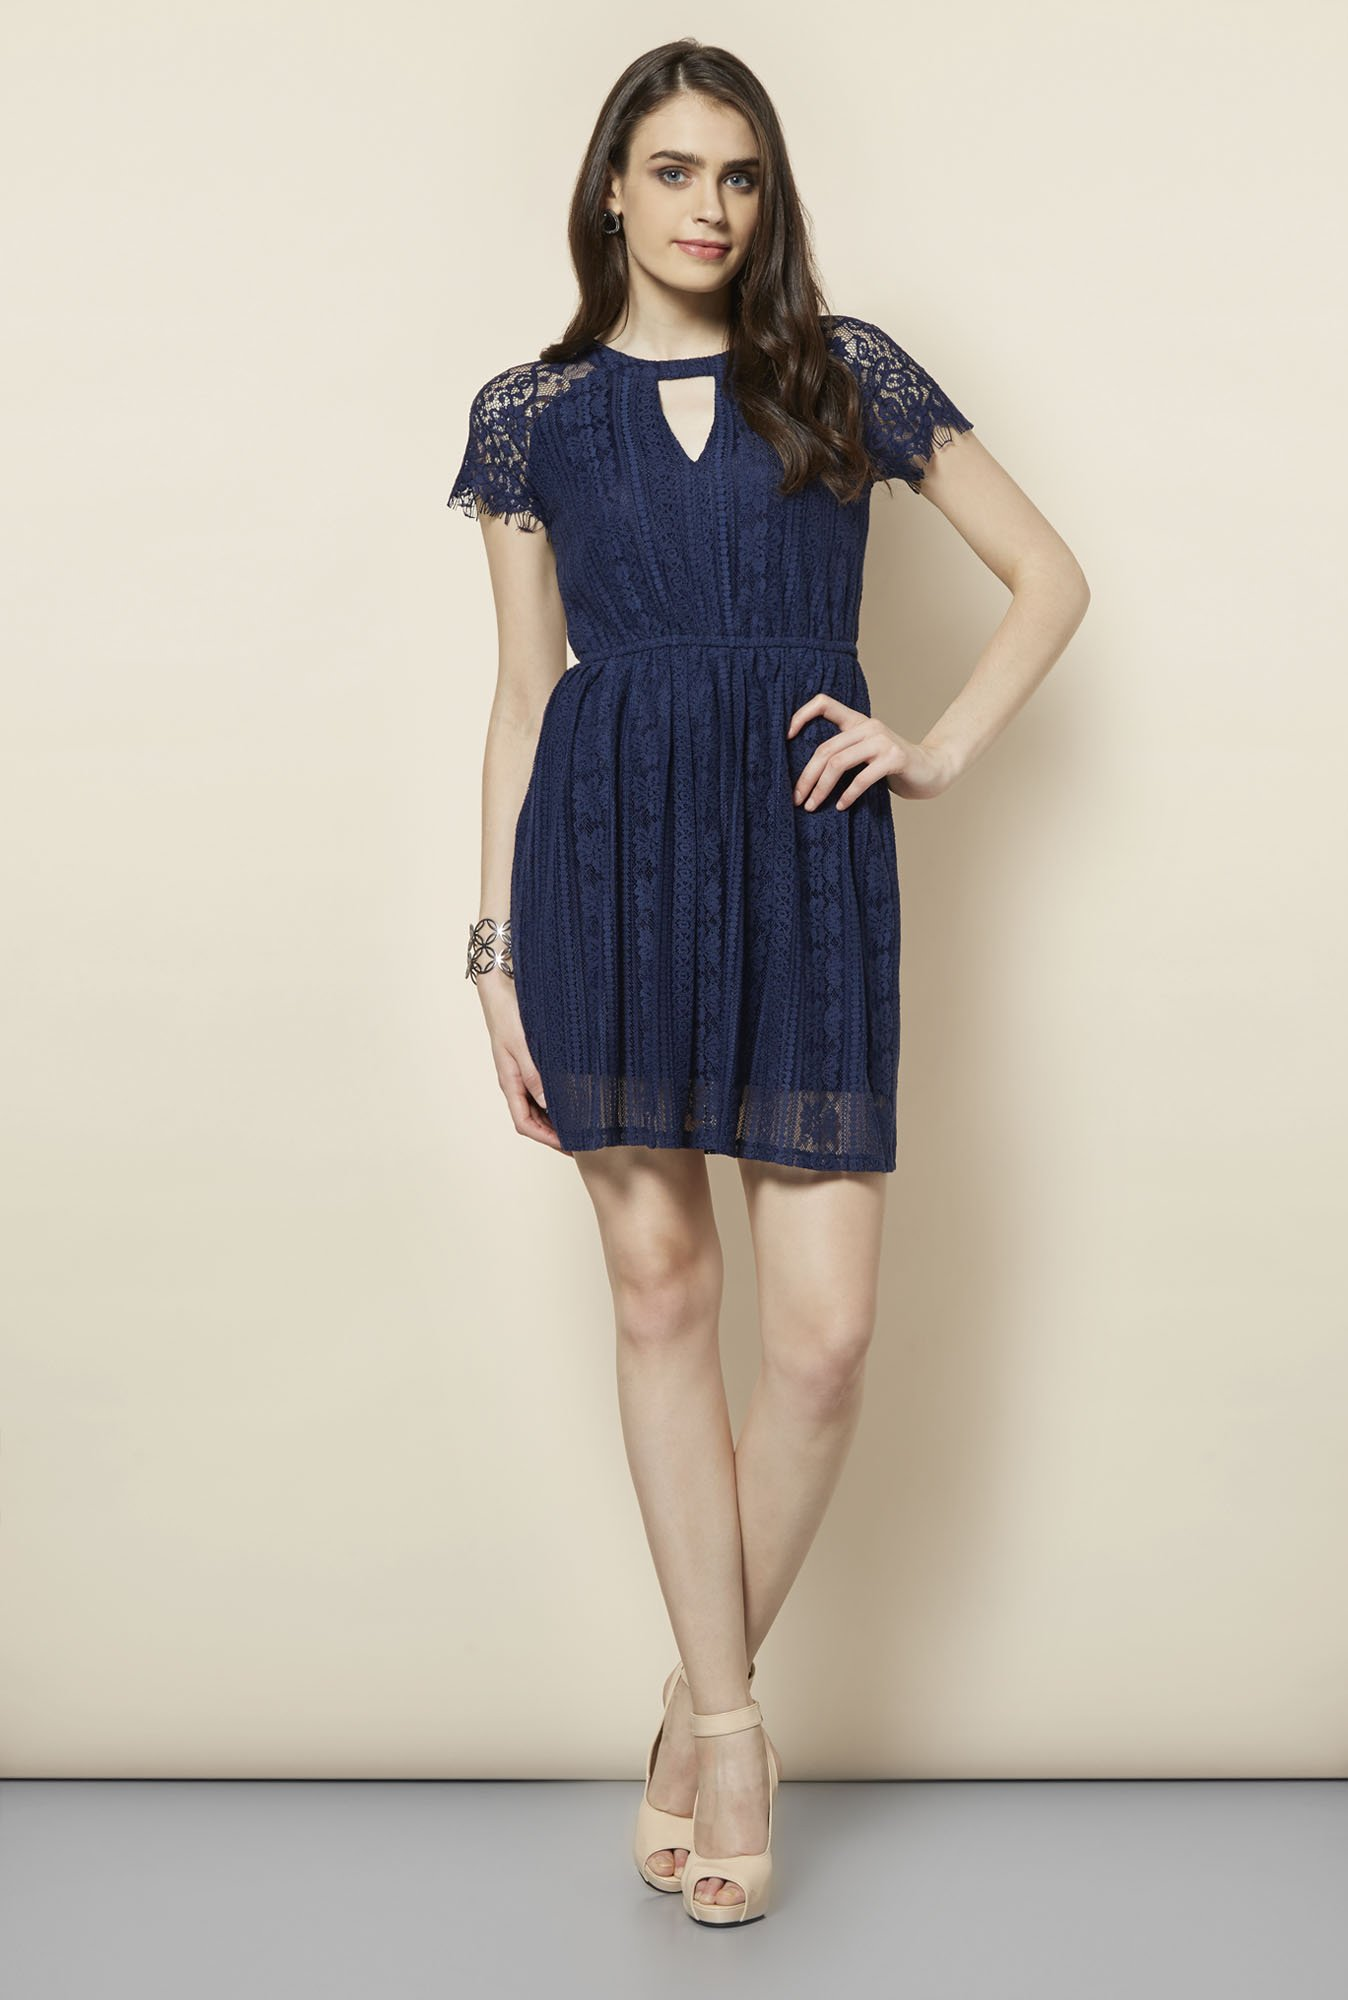 FG-4 Navy Rowna A-Line Dress